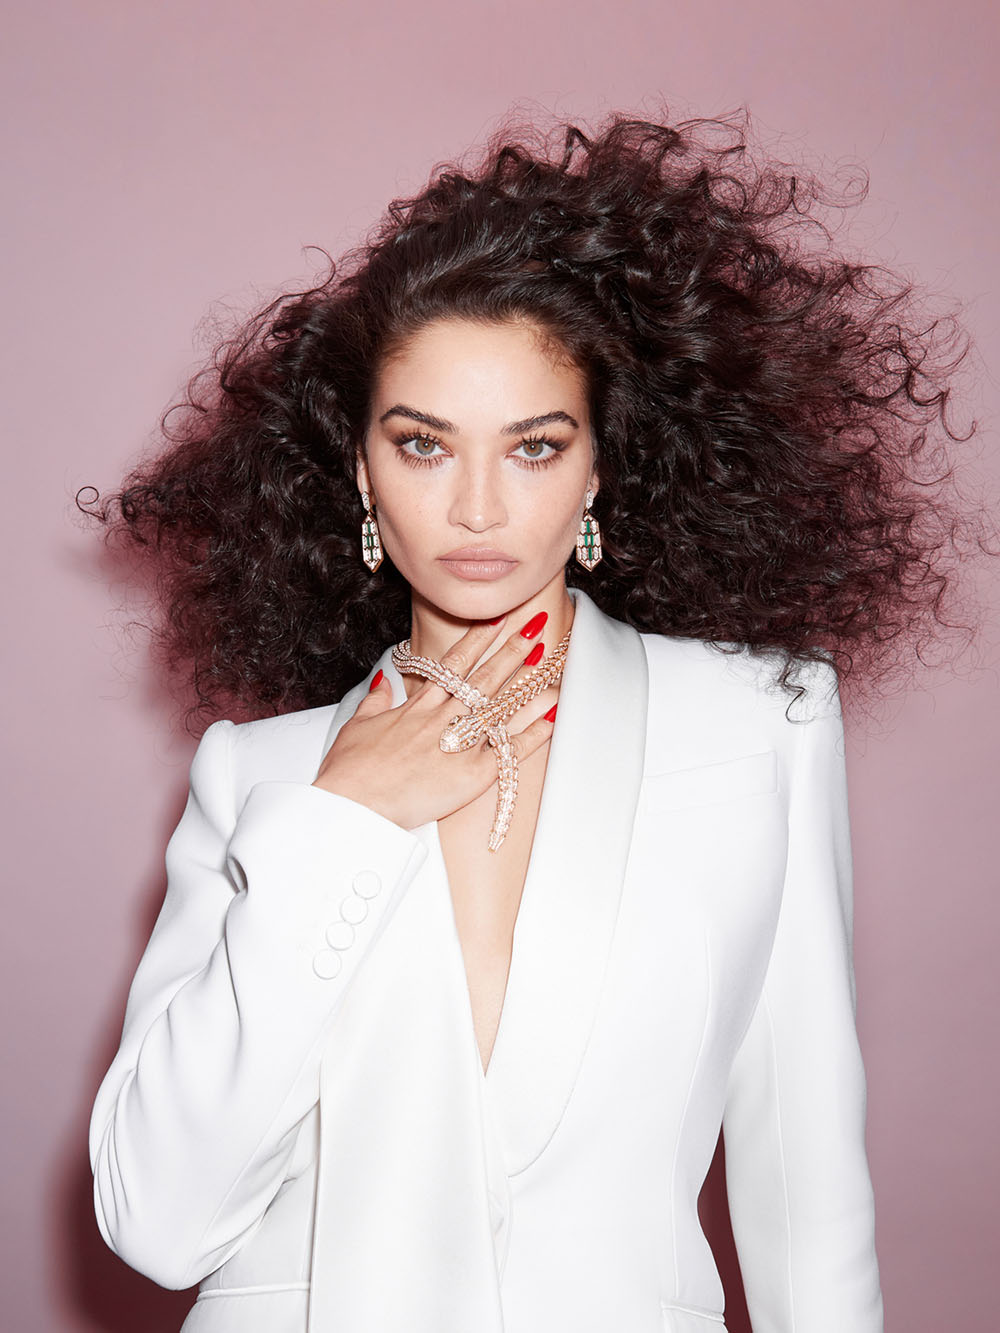 Shanina Shaik covers Harper's Bazaar Singapore January 2021 by Claire Rothstein